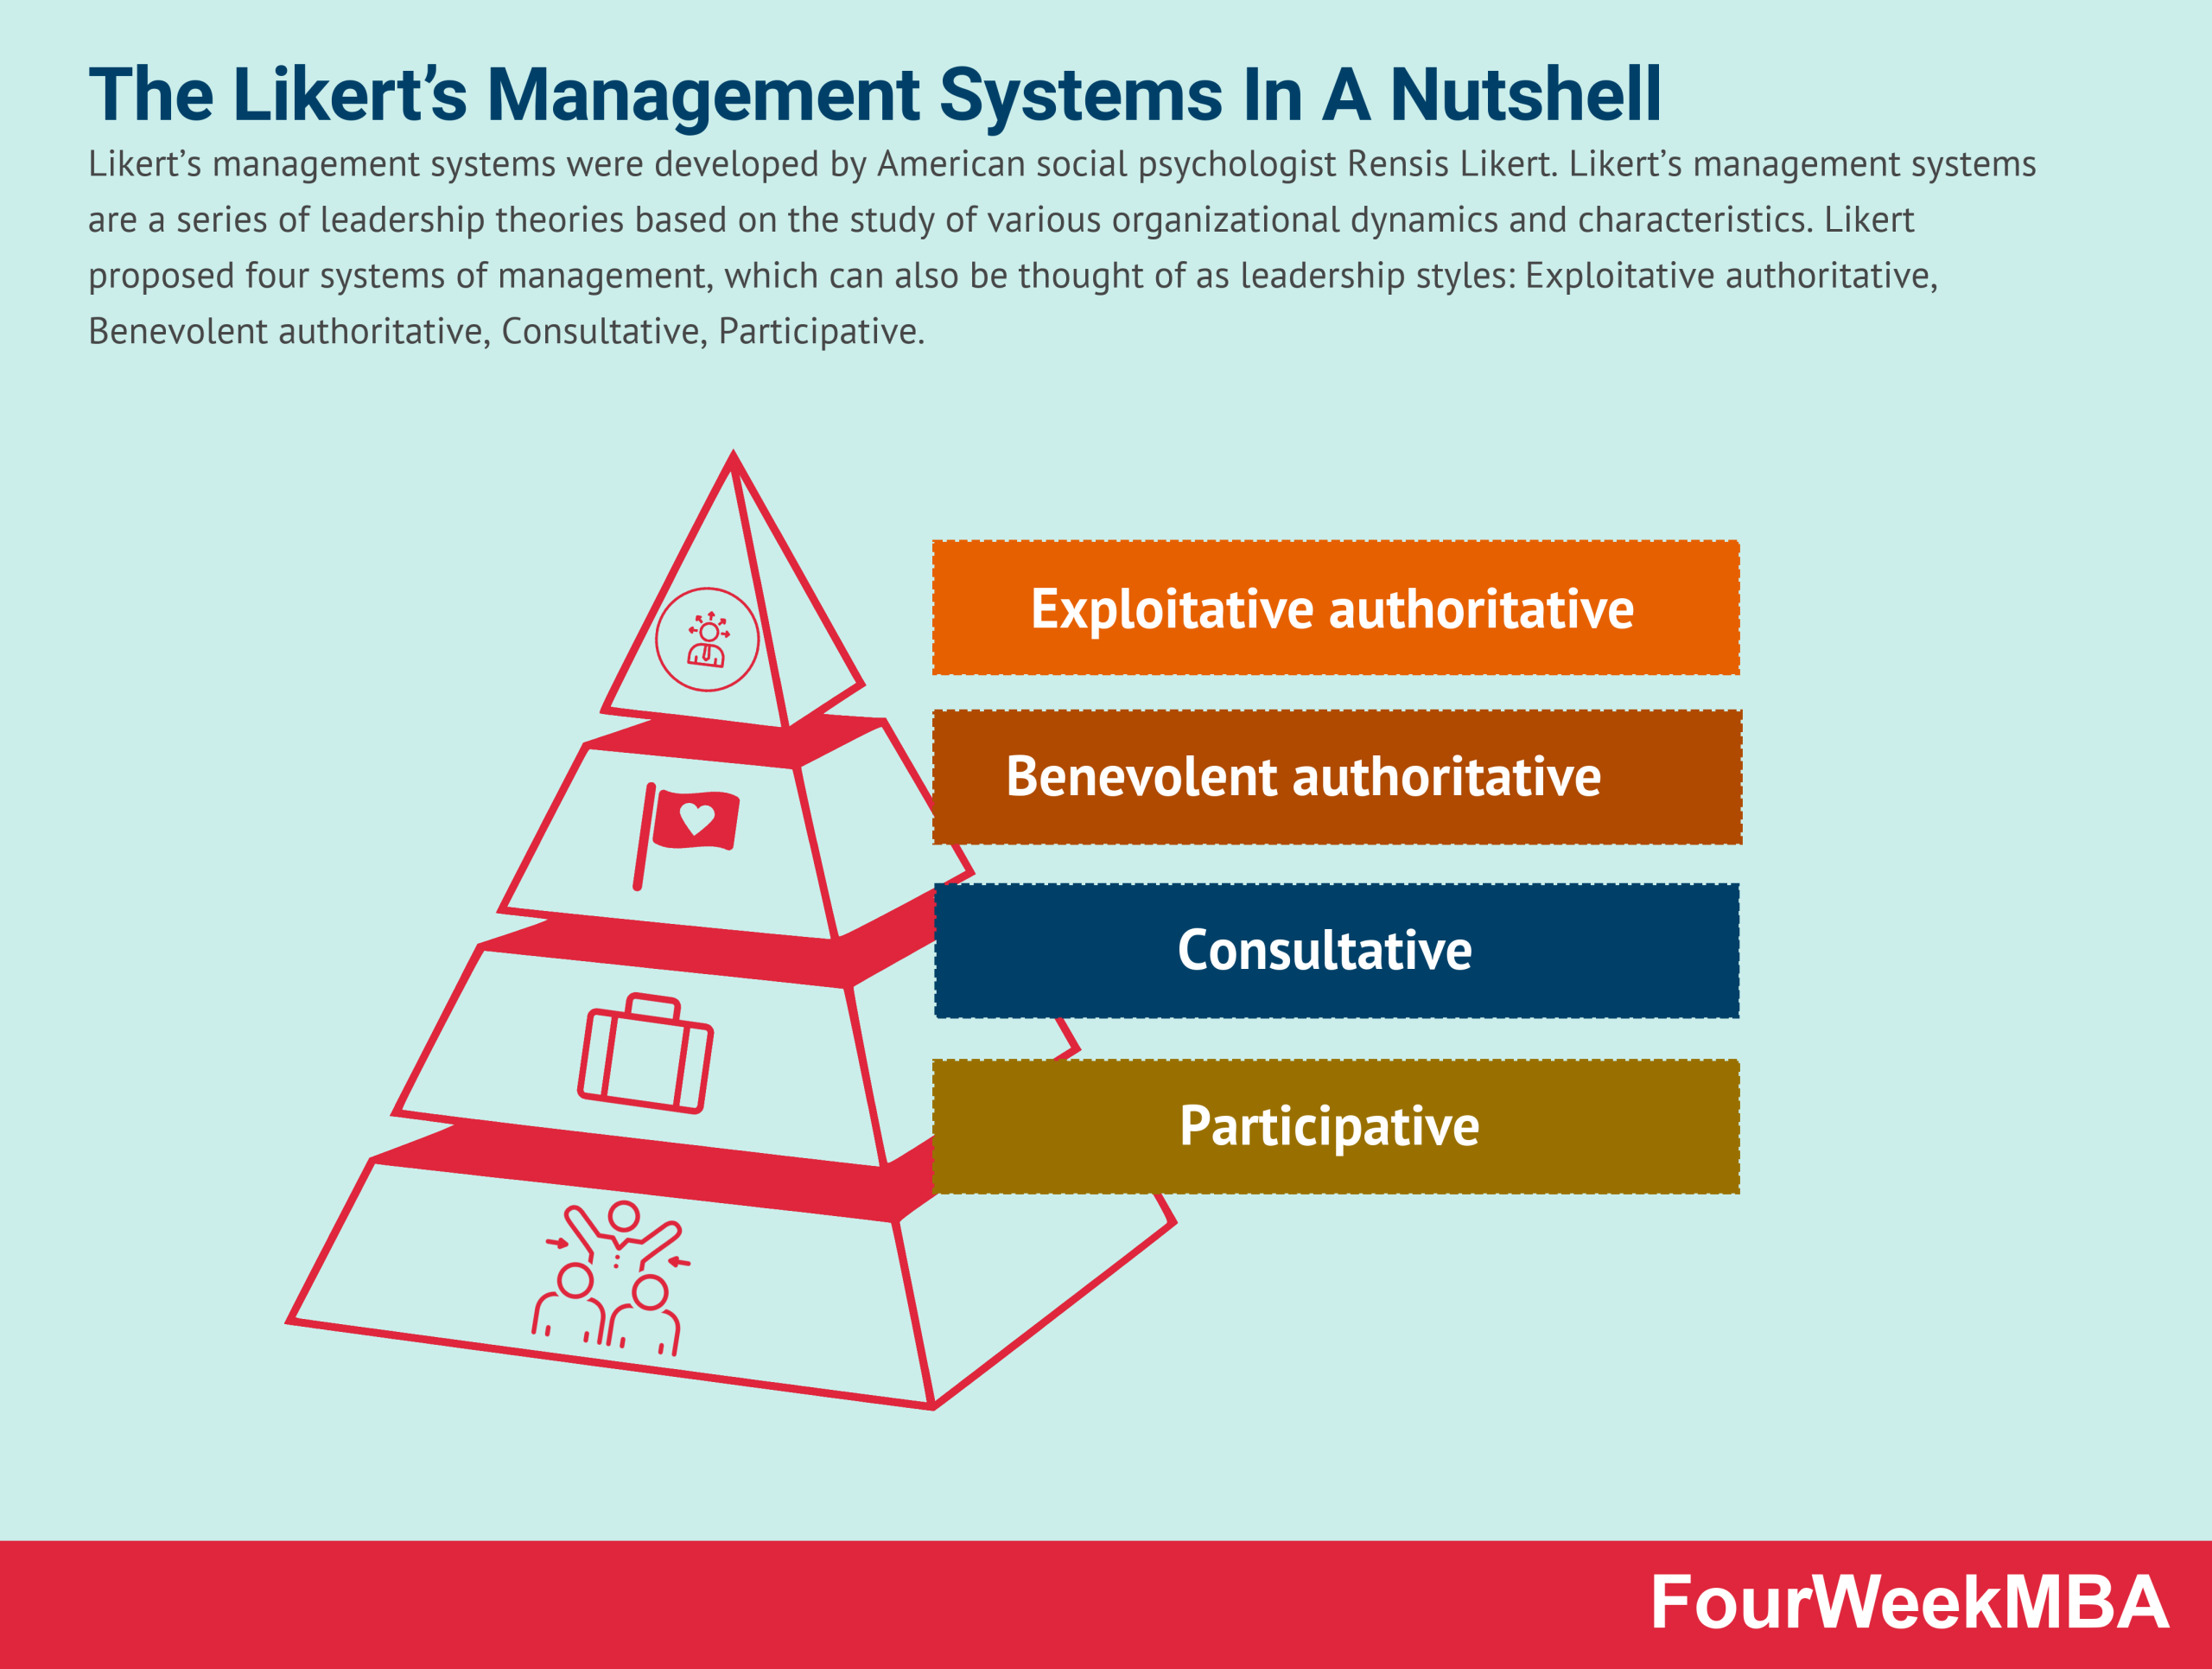 likerts-management-systems